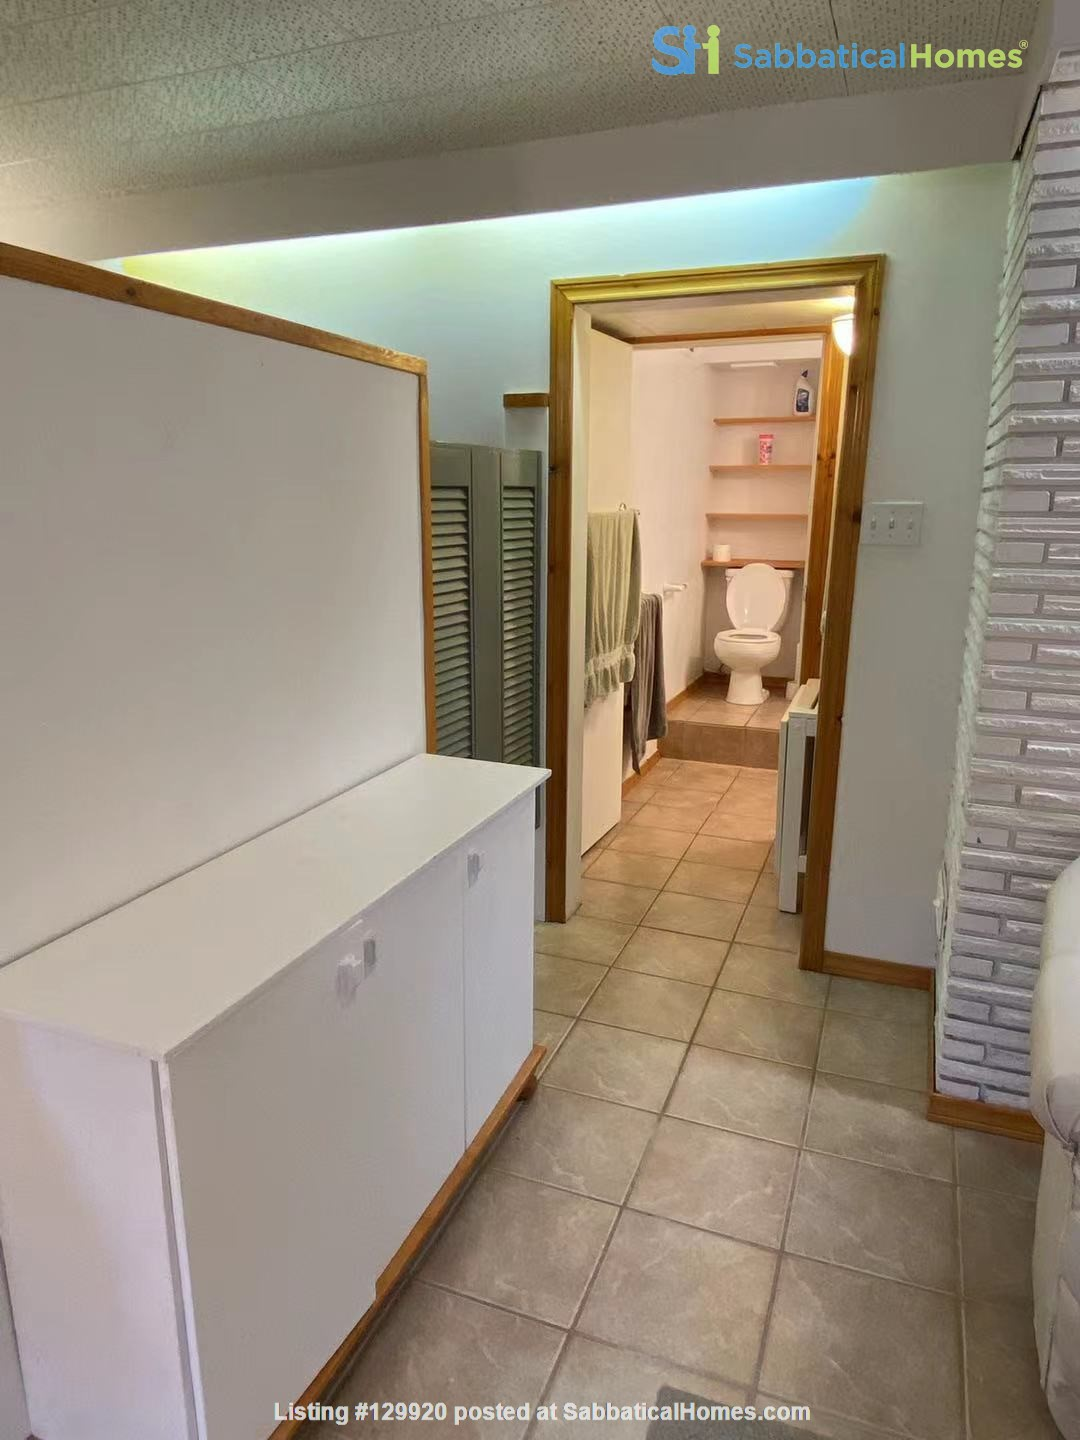 Walkout basement suite on UoA campus for short term daily rental ($50/day) Home Rental in Edmonton, Alberta, Canada 4